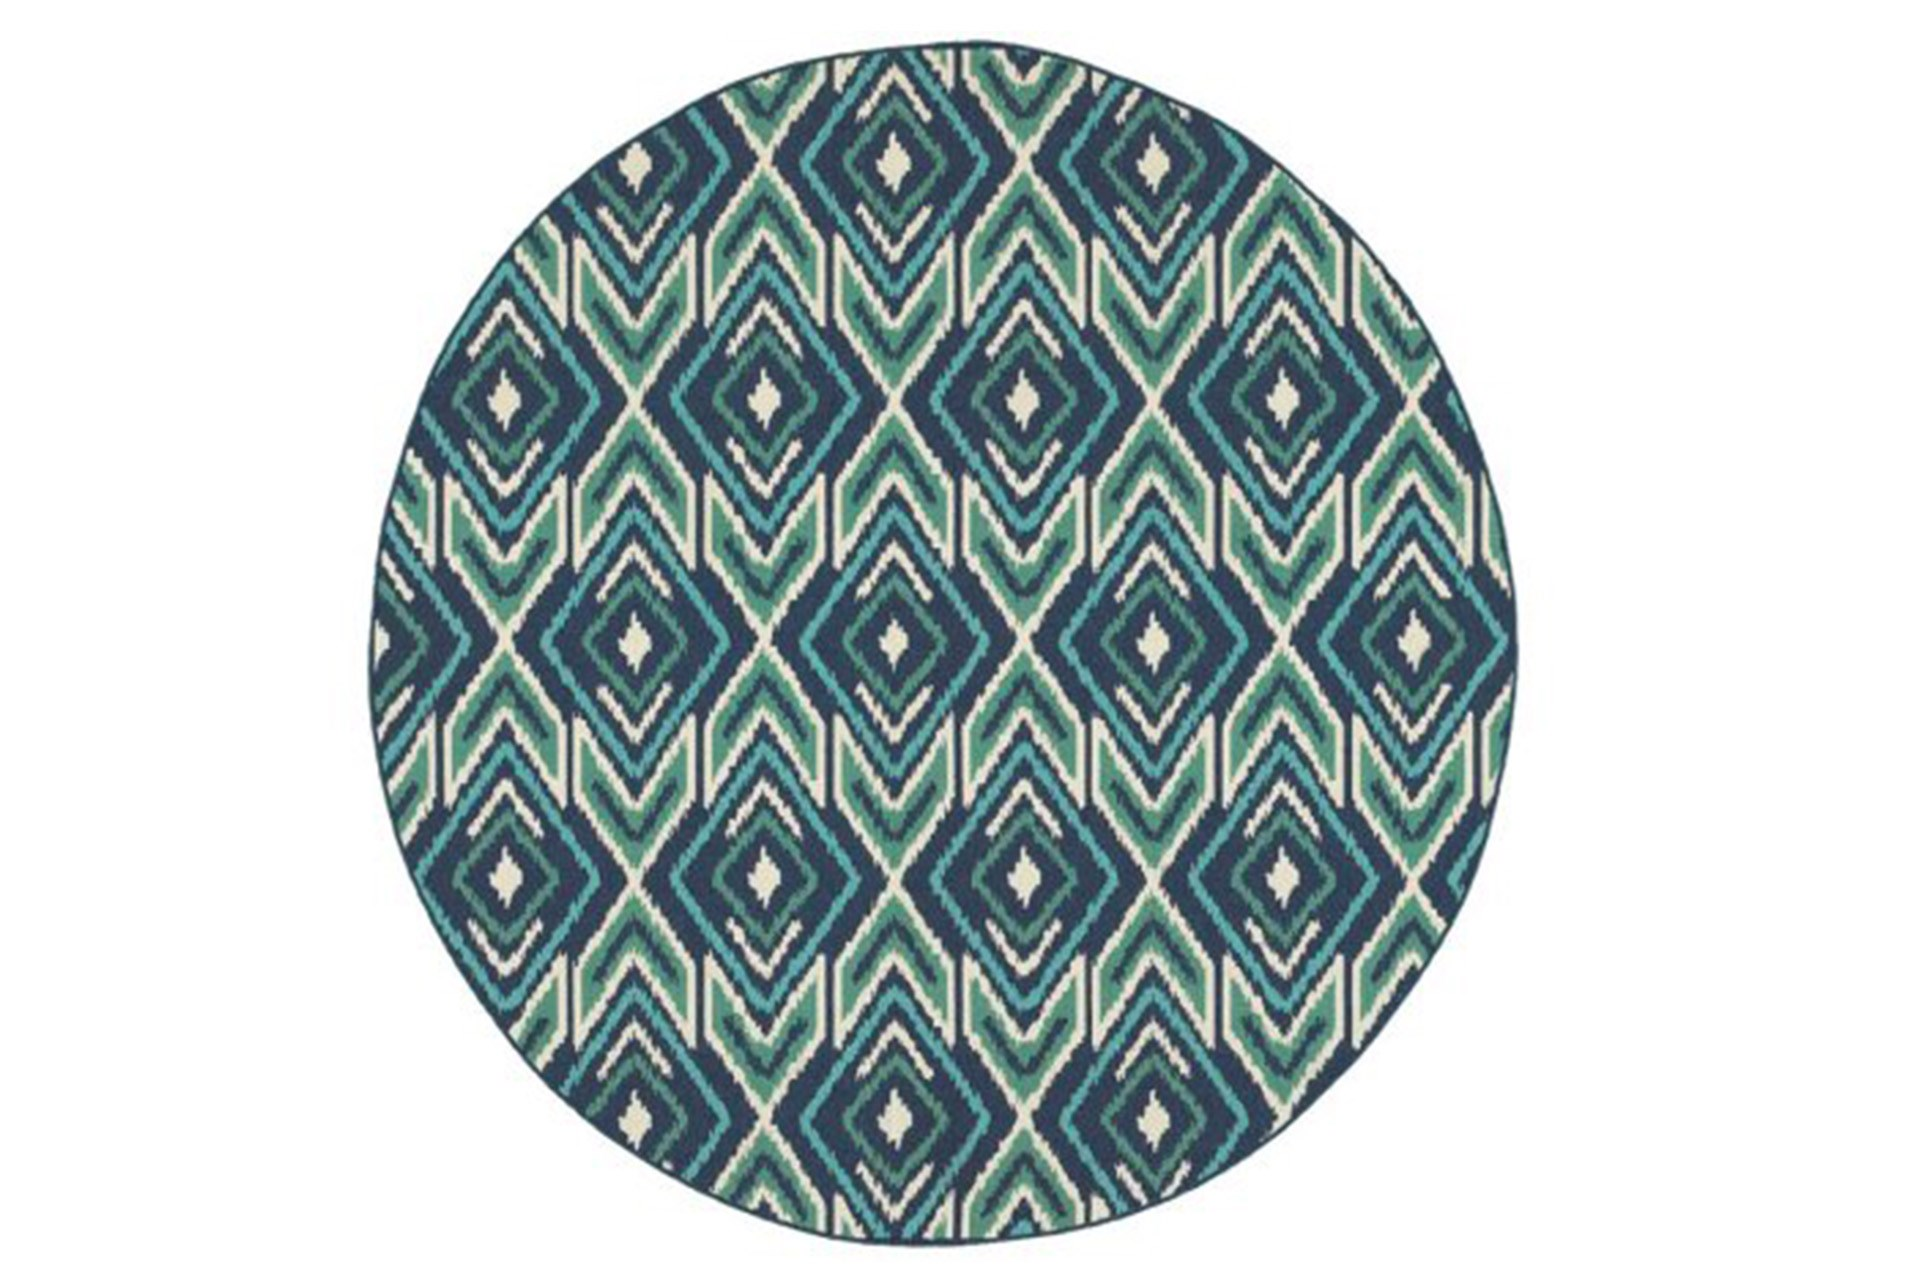 94 inch round outdoor rug west bay ikat qty 1 has been successfully added to your cart